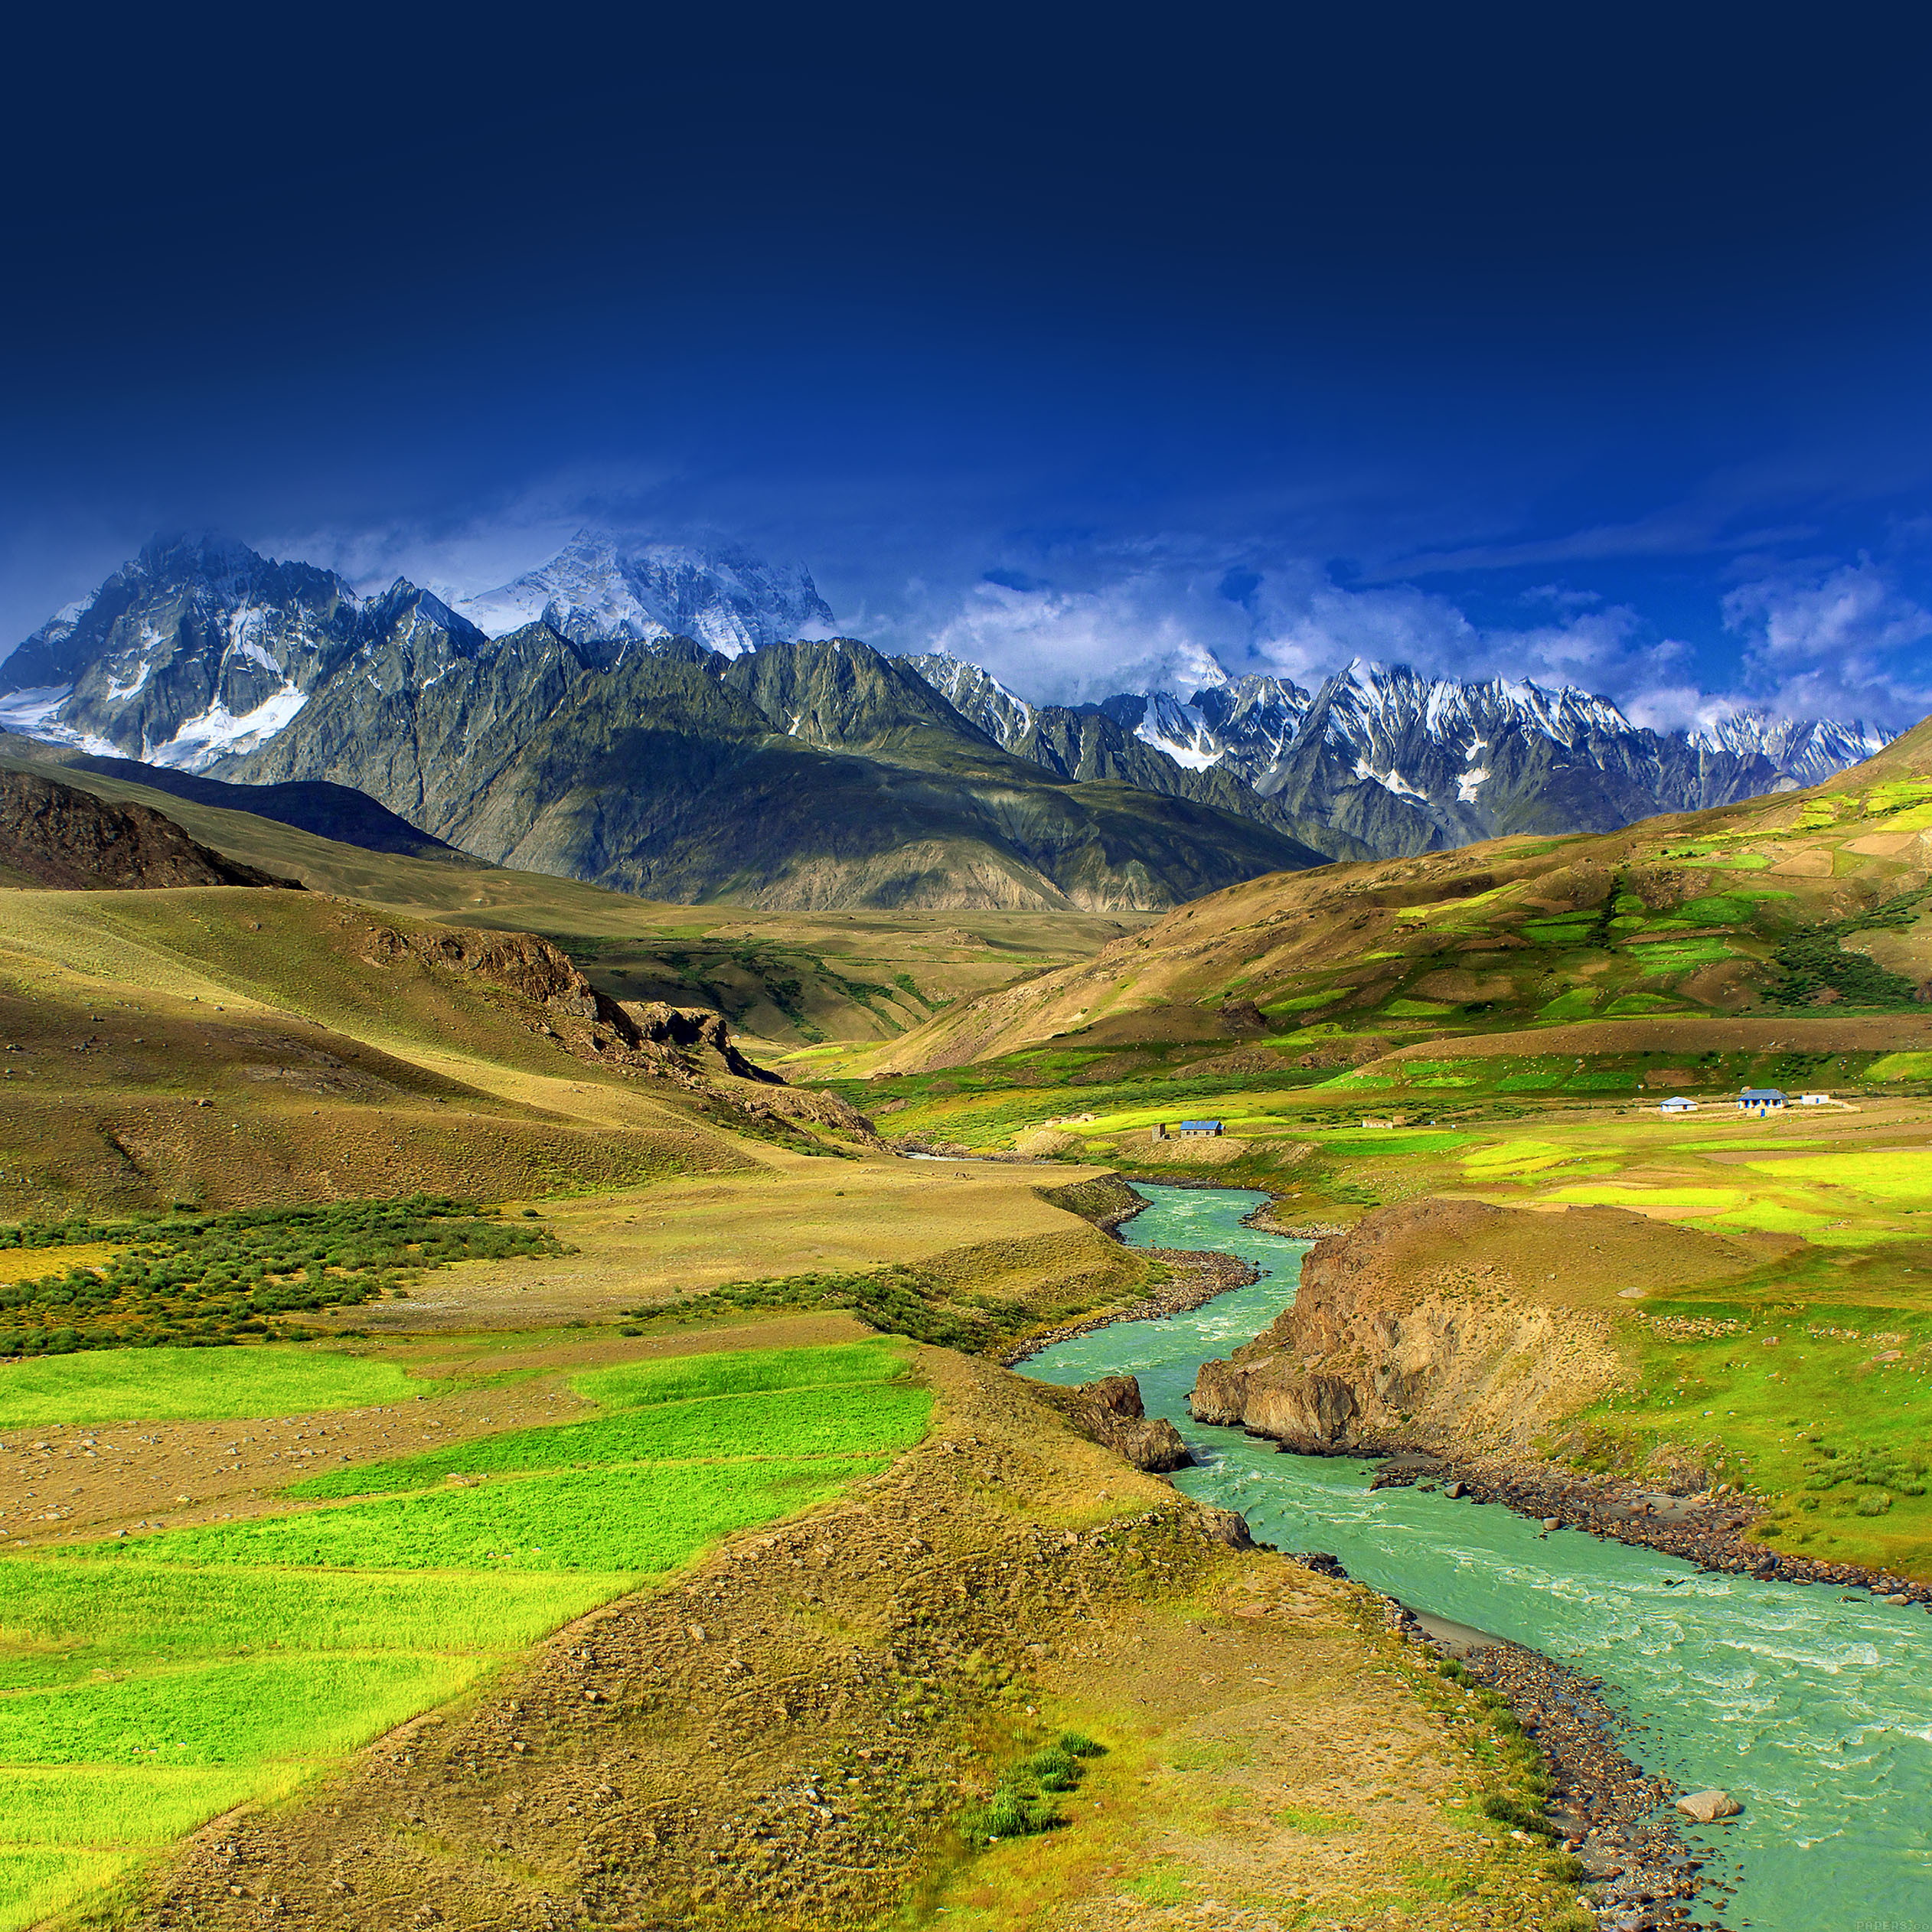 Md23-wallpaper-nature-mountain-green-river